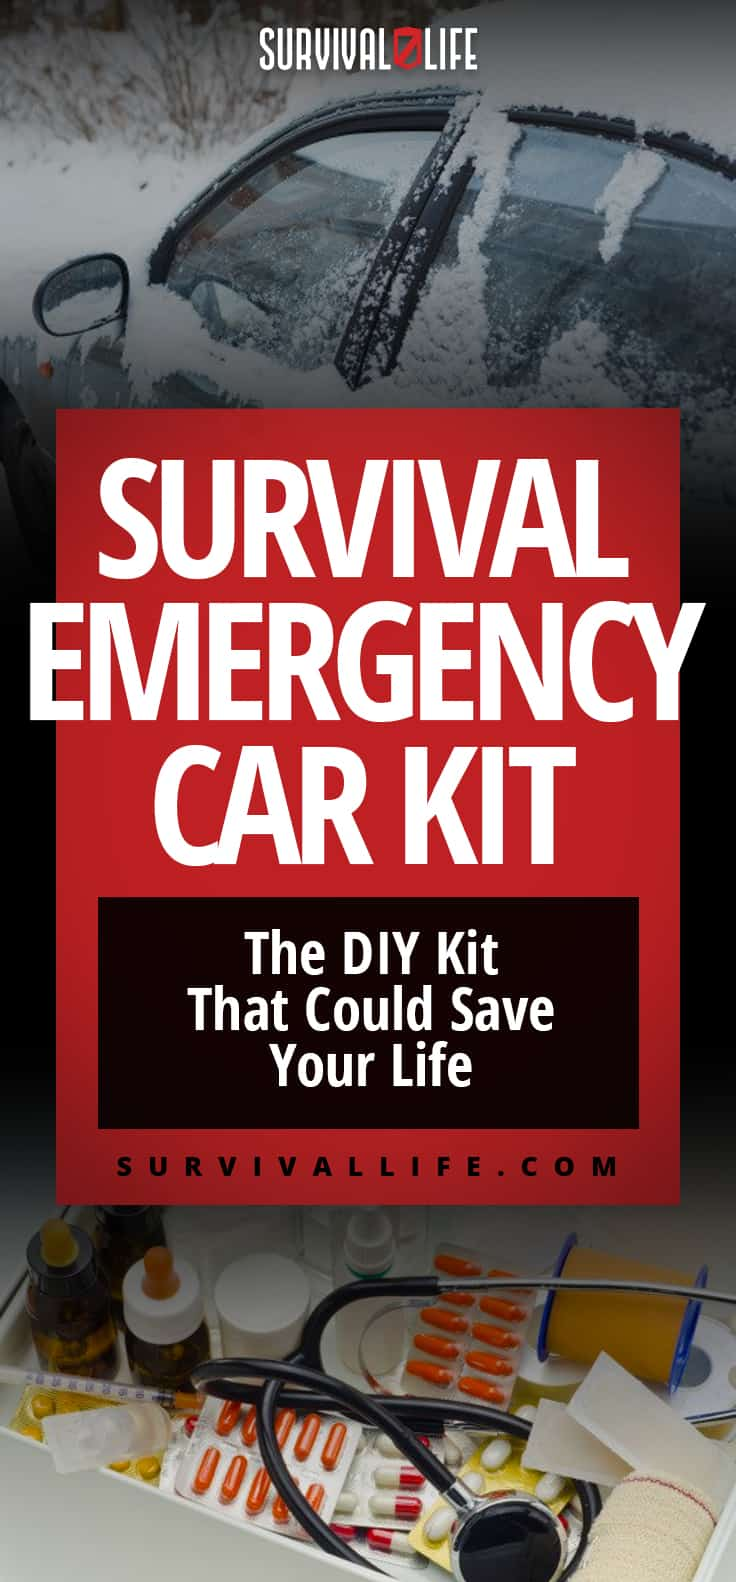 Survival Emergency Car Kit | The DIY Kit That Could Save Your Life